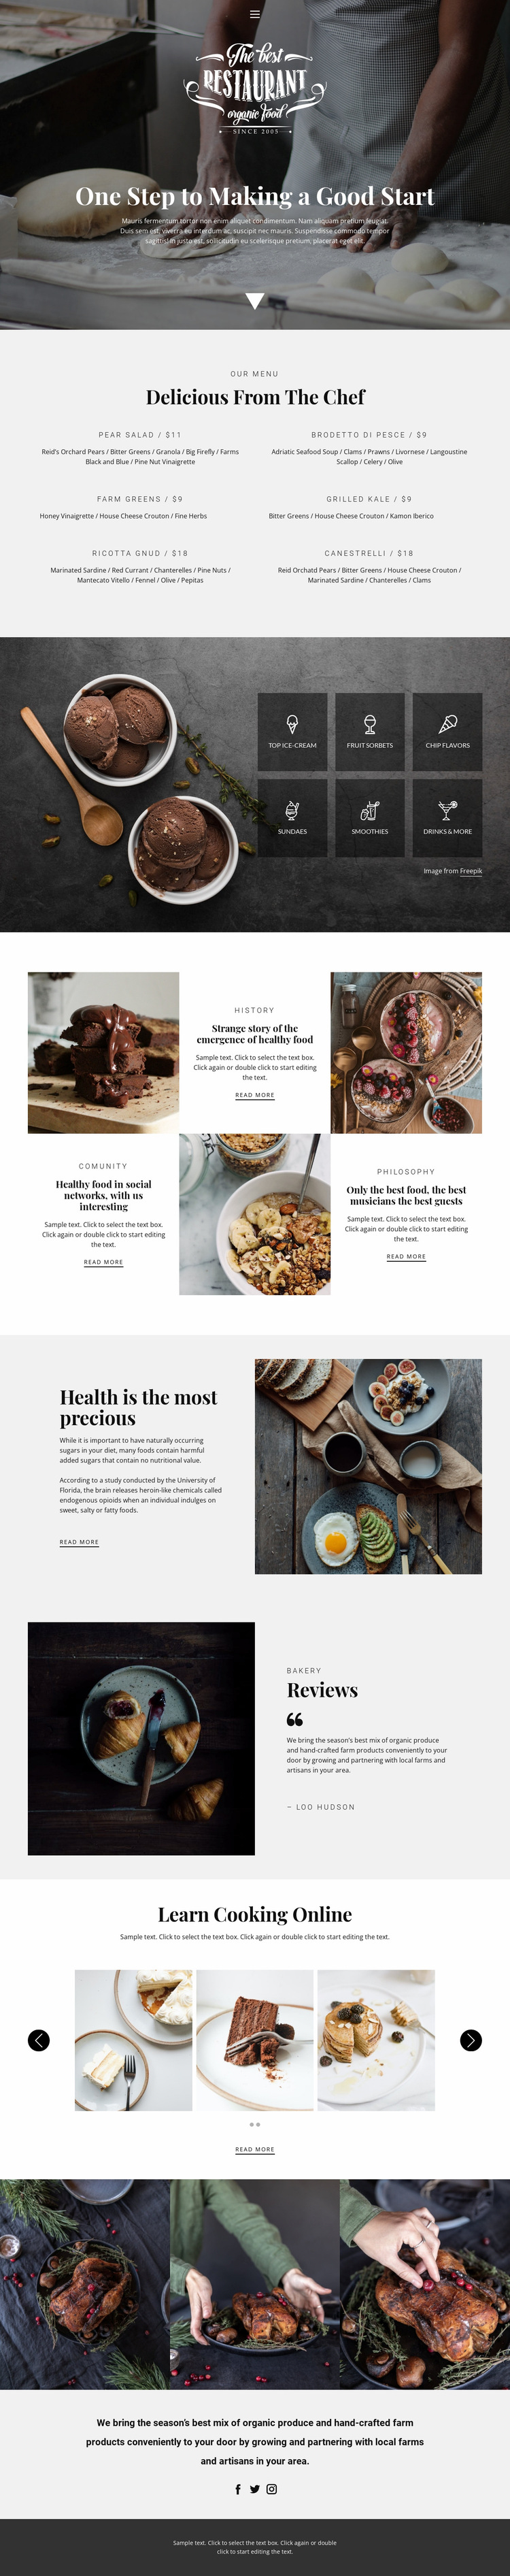 Recipes and cook lessons Website Builder Templates